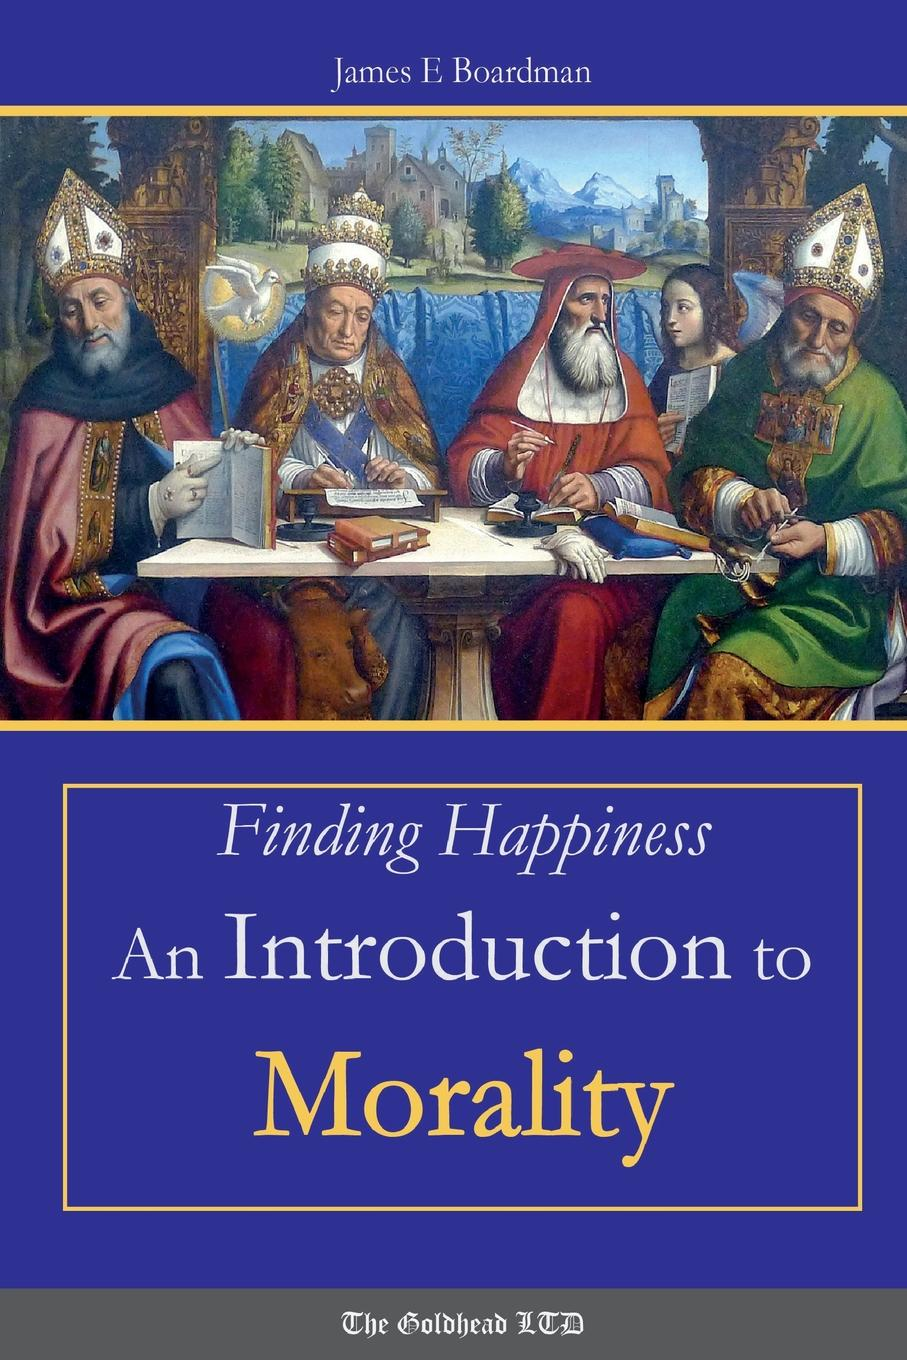 лучшая цена James E. Boardman Finding Happiness. An Introduction to Morality